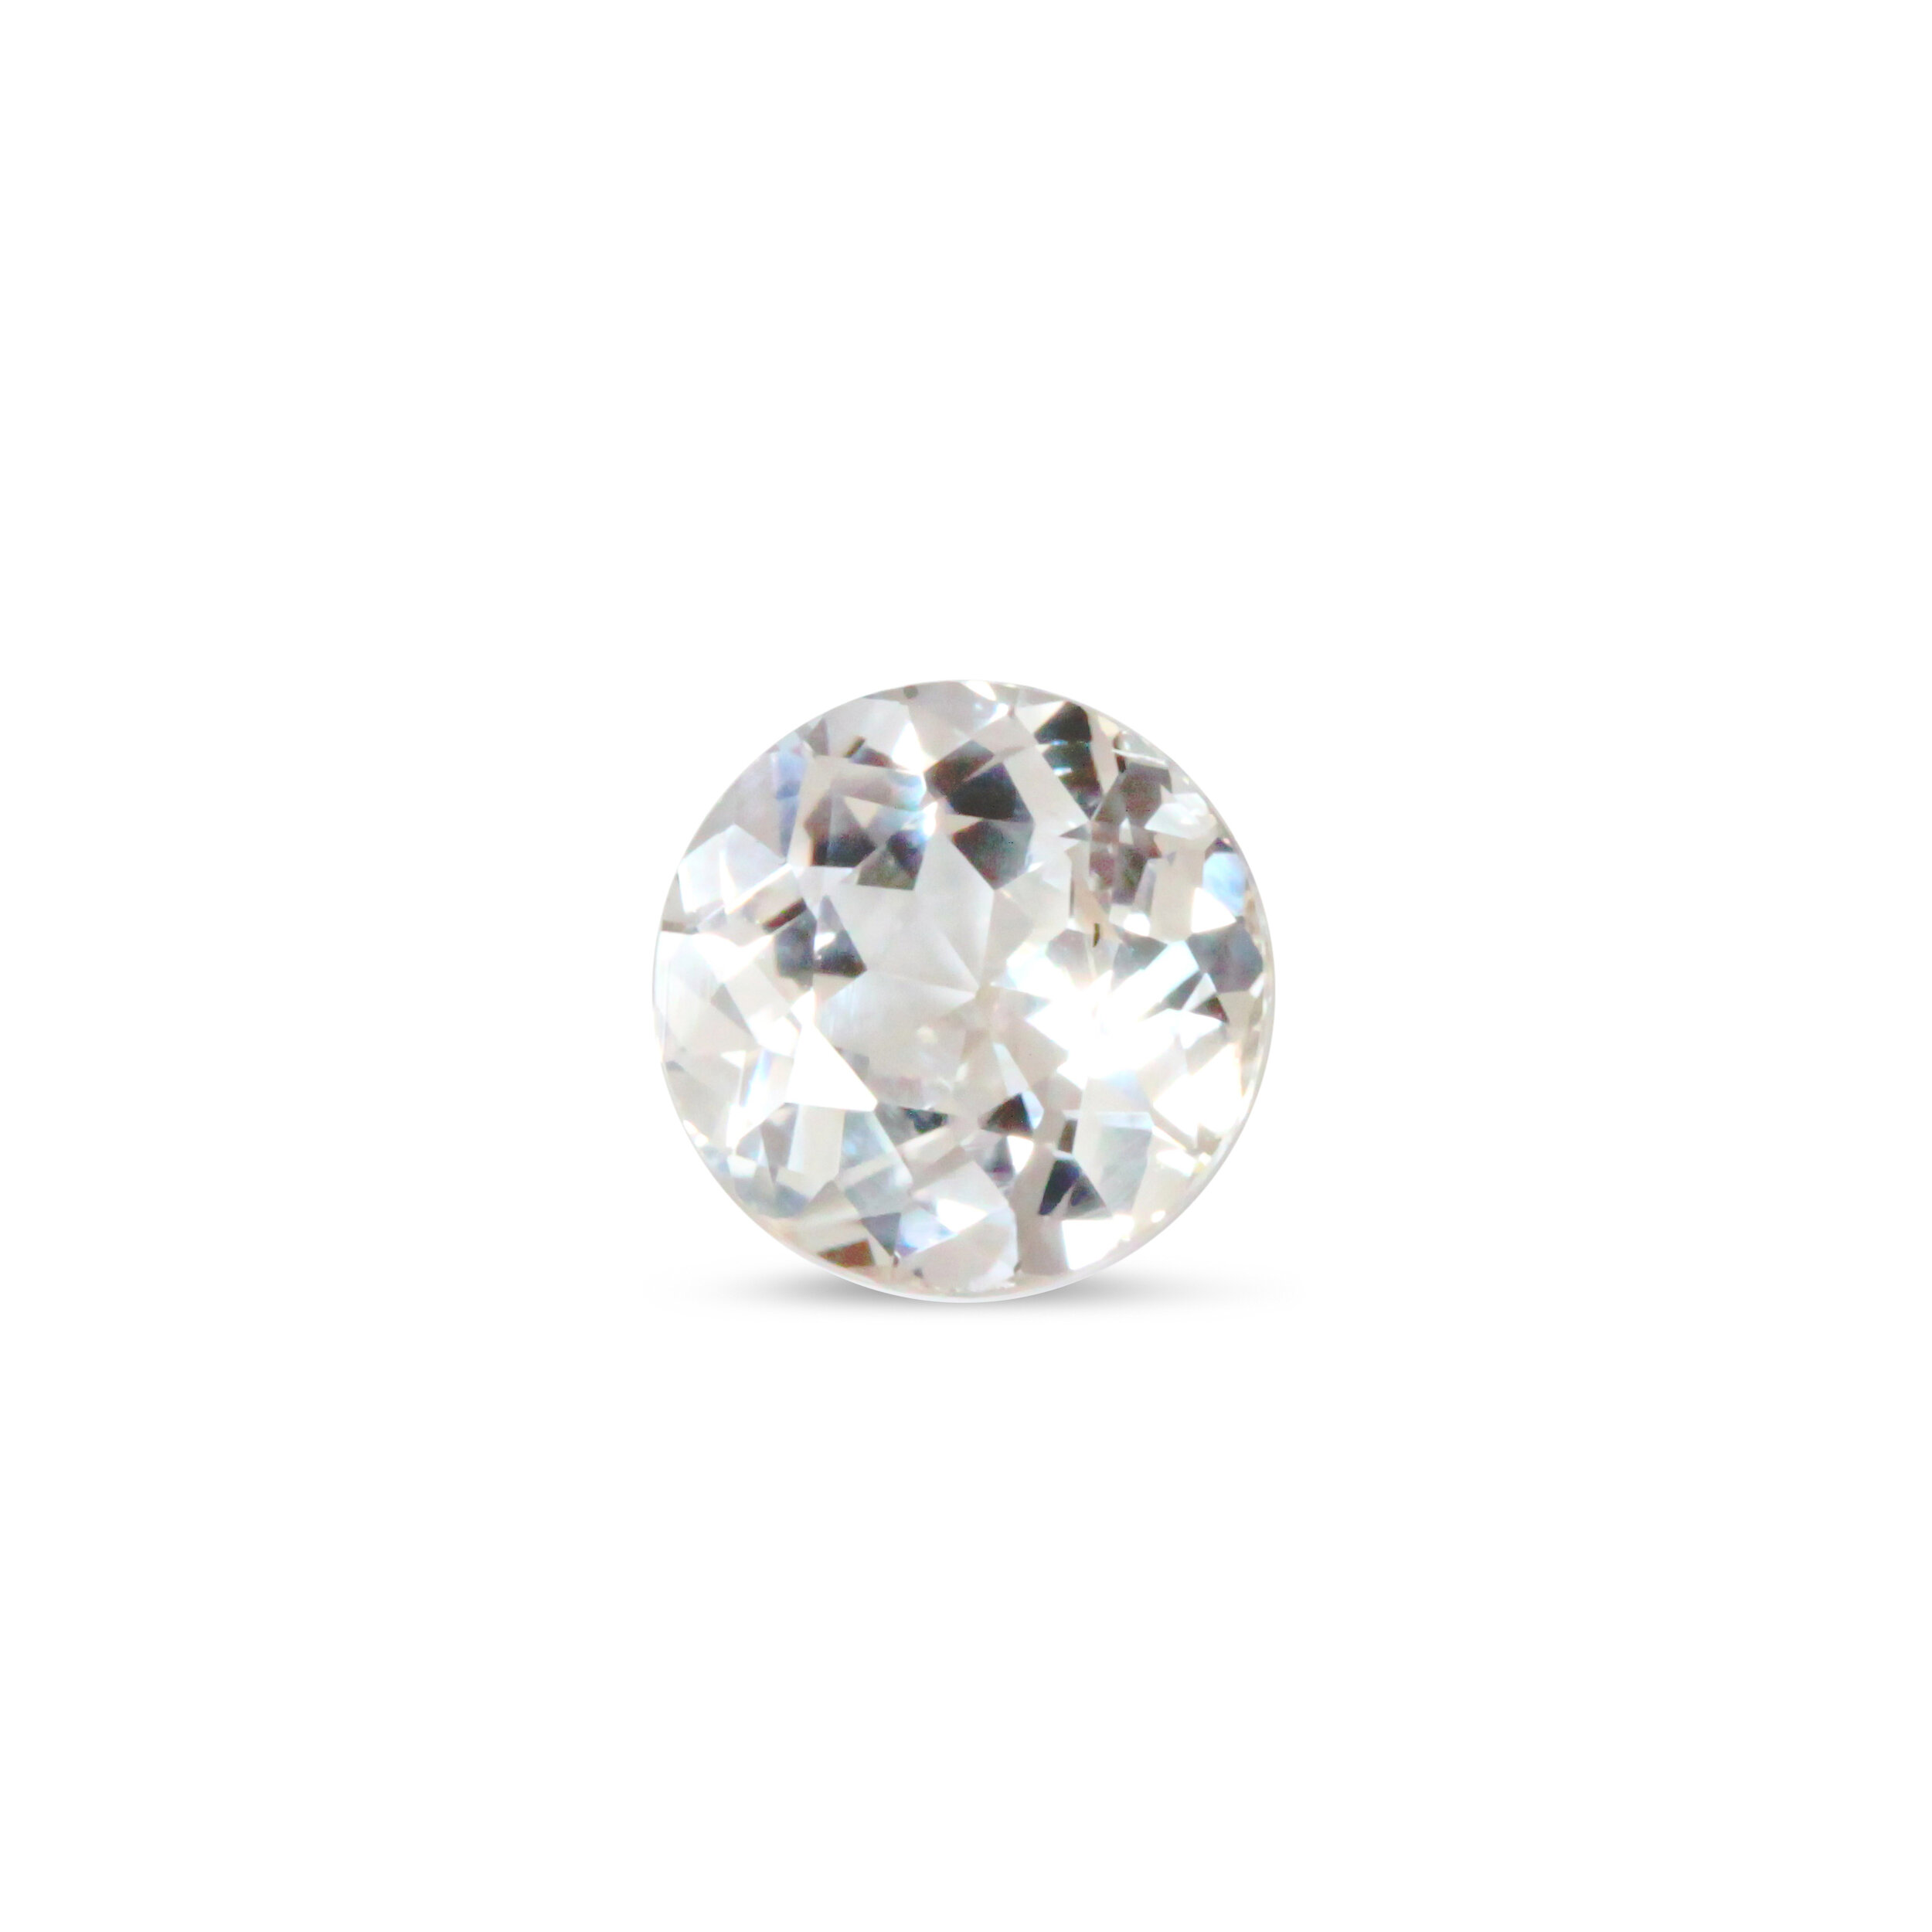 This near-colorless sapphire was diagnosed by AGL (New York) with a rare phenomenon. When the color center is active, it appears pale yellow-orange. When the color center is relaxed, it is near colorless with a slight bluish tinge. A collector was thrilled to acquire this rare gem from us, so an unstable color center is not always a bad thing.